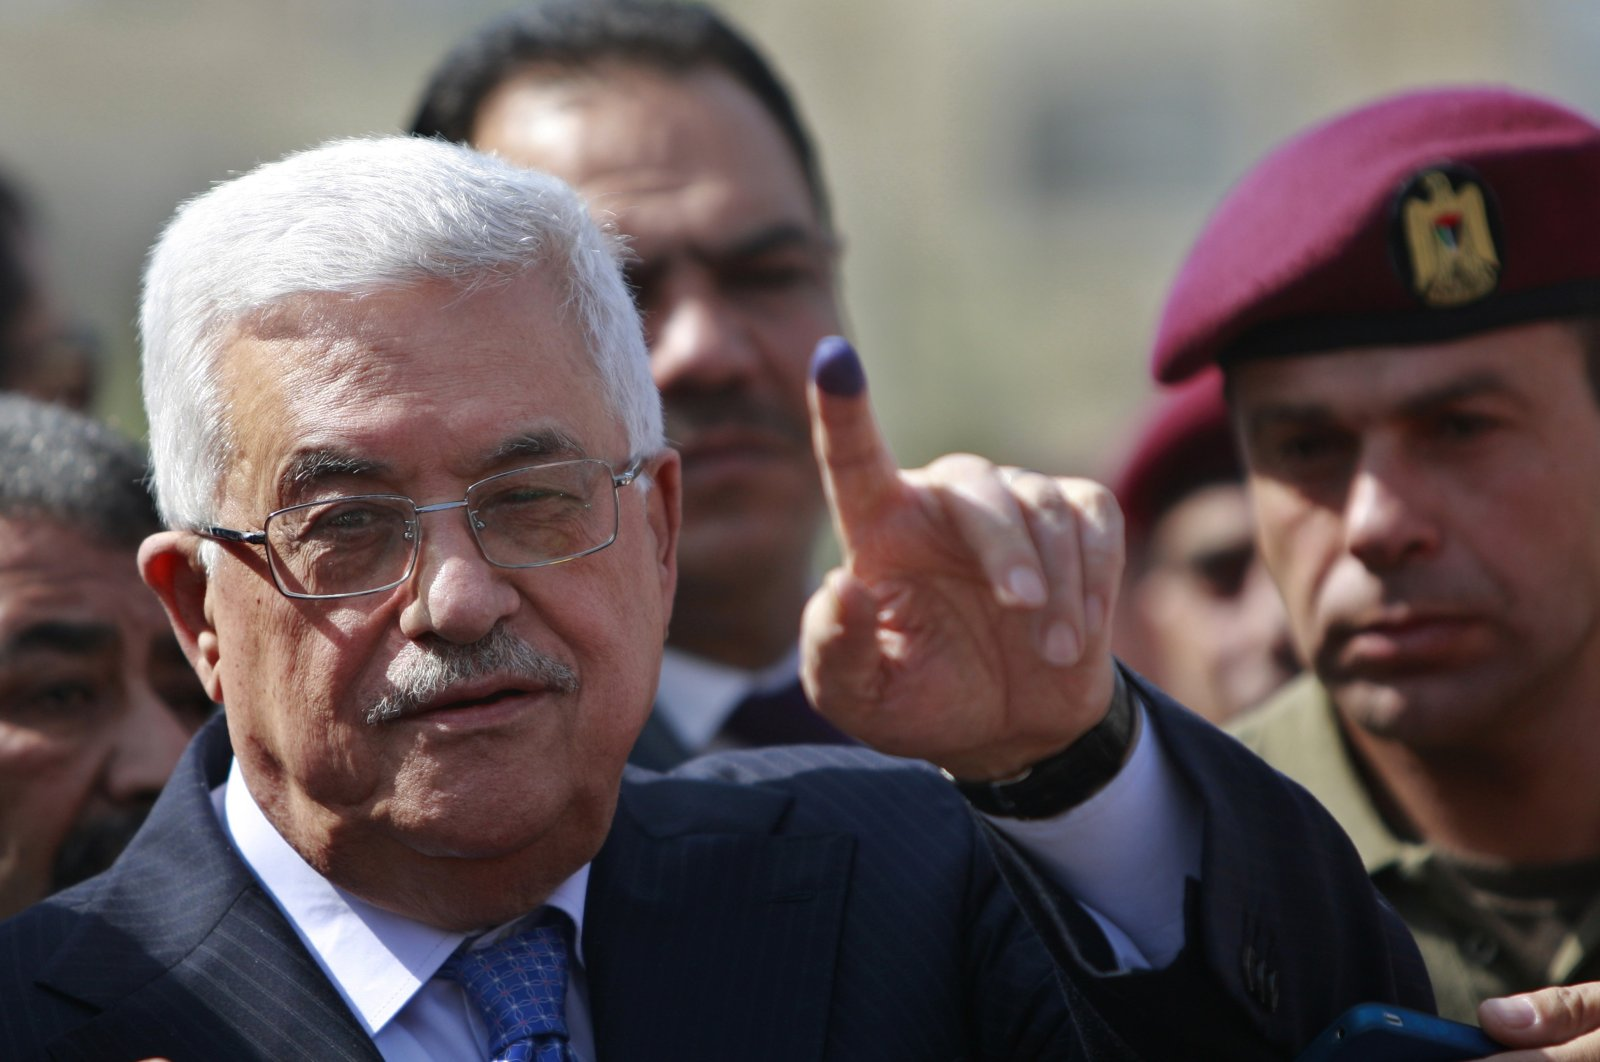 Palestinian President Mahmoud Abbas shows his ink-stained finger after casting his vote during local elections, at a polling station in the West Bank city of Ramallah, Oct. 20, 2012. (AP Photo)